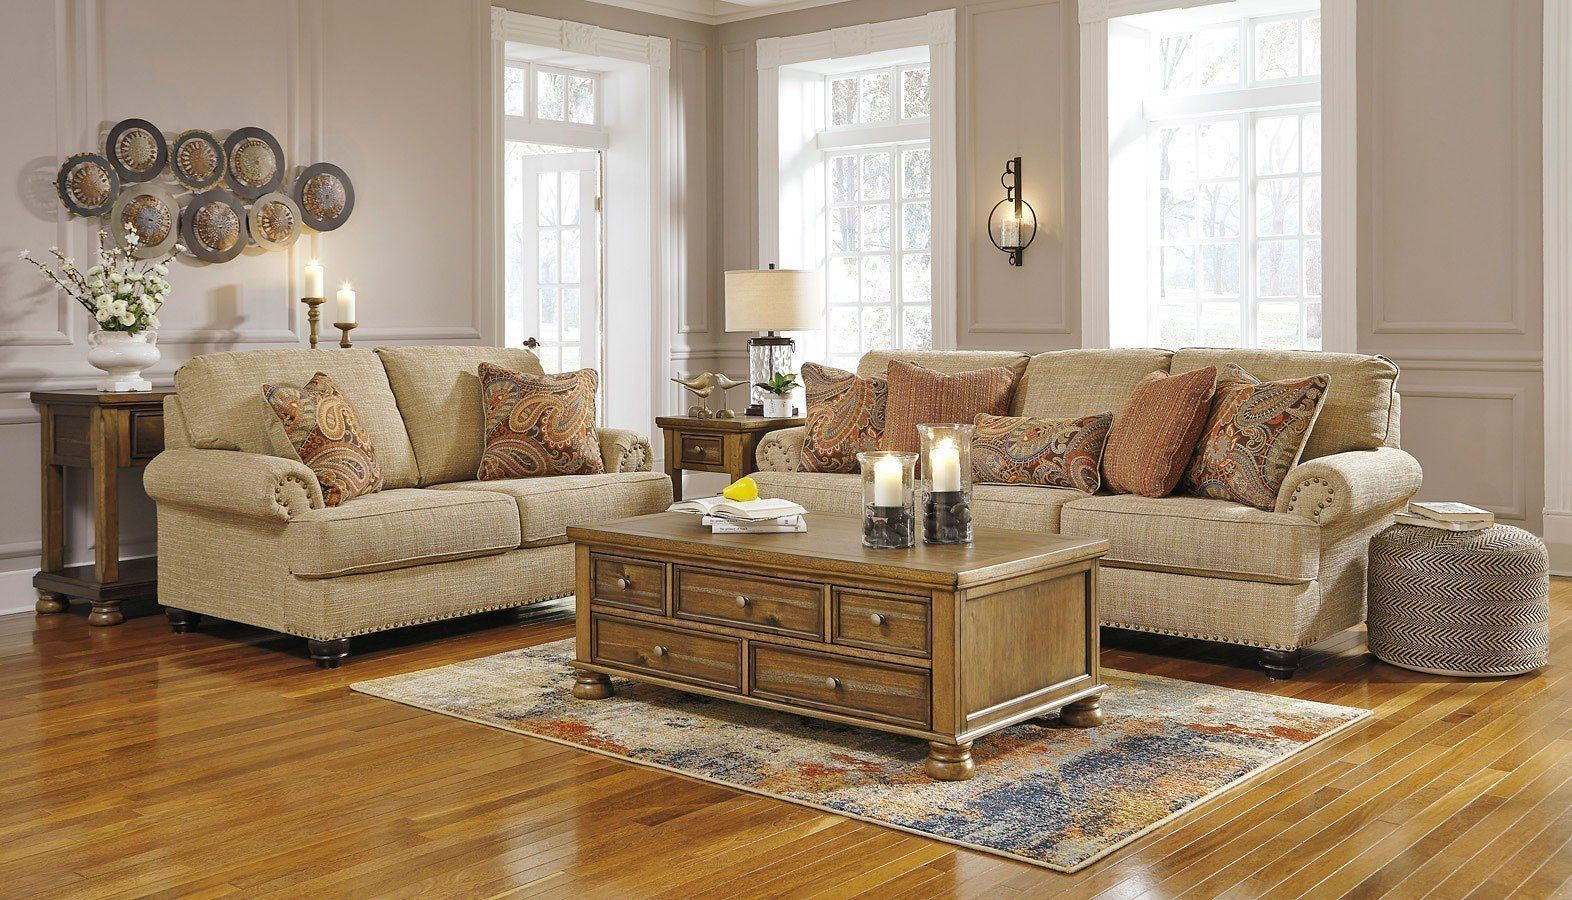 It's likely you and your guests will spend countless hours in this room, discussing and entertaining. Candoro Oatmeal Living Room Set #Livingroomideas | Living ...